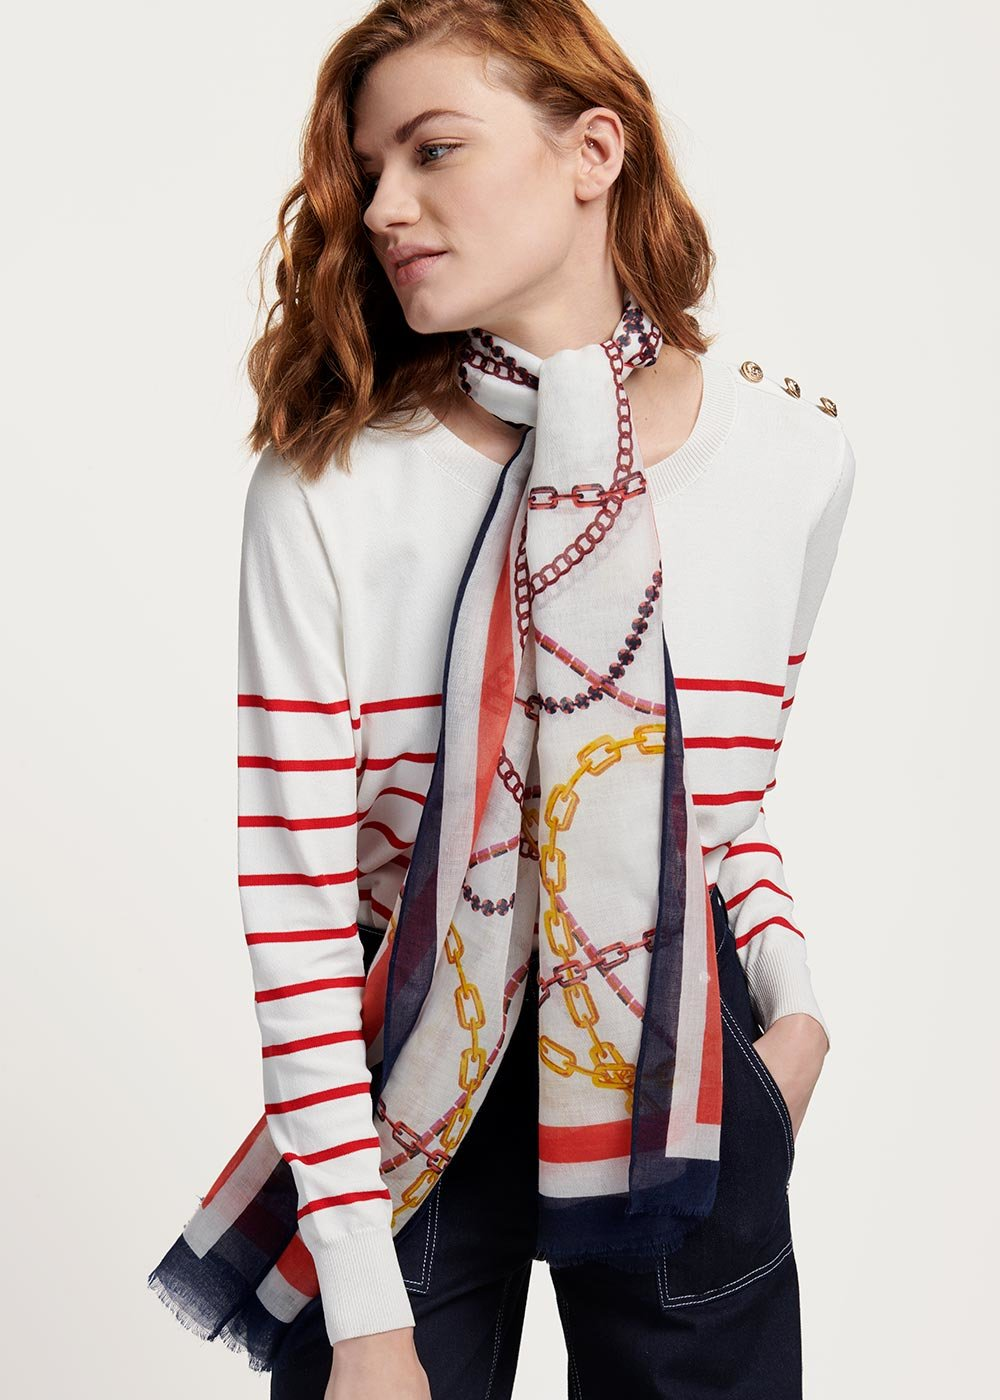 Sydn scarf with chain pattern